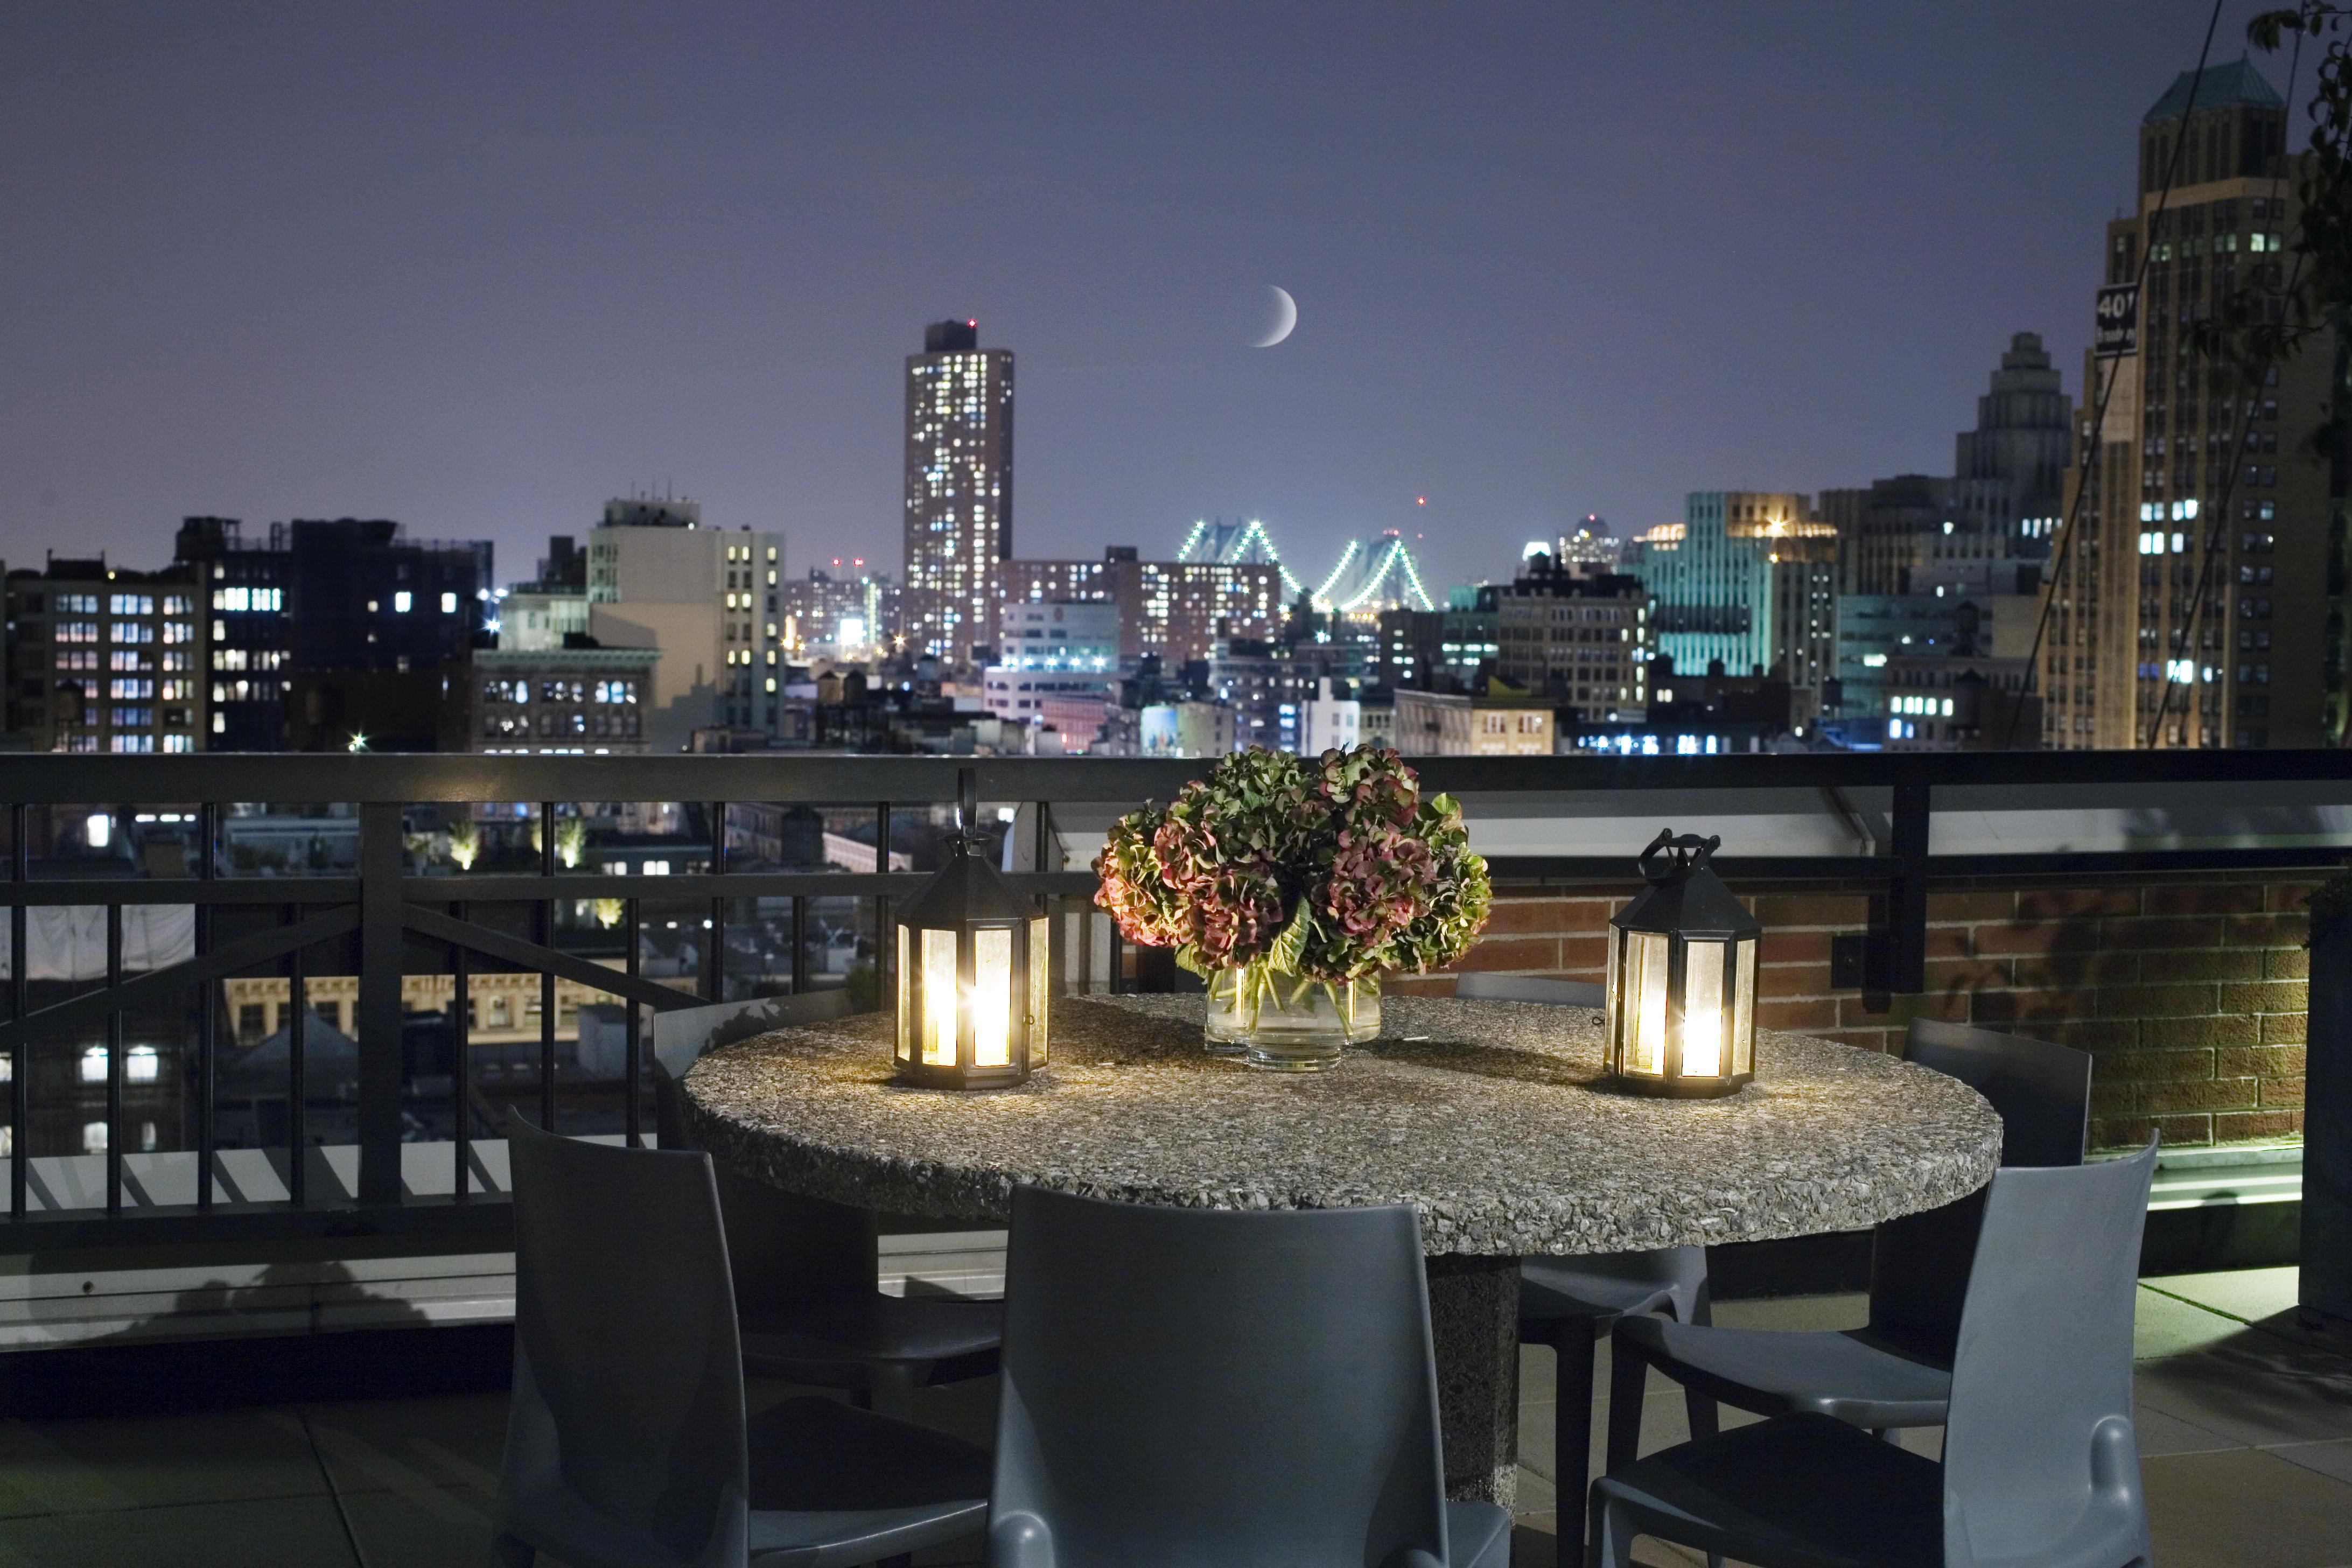 Exclusive rates at the soho grand hotel new york city magellan luxury hotels gives you free service upgrades perks and the best rates guaranteed